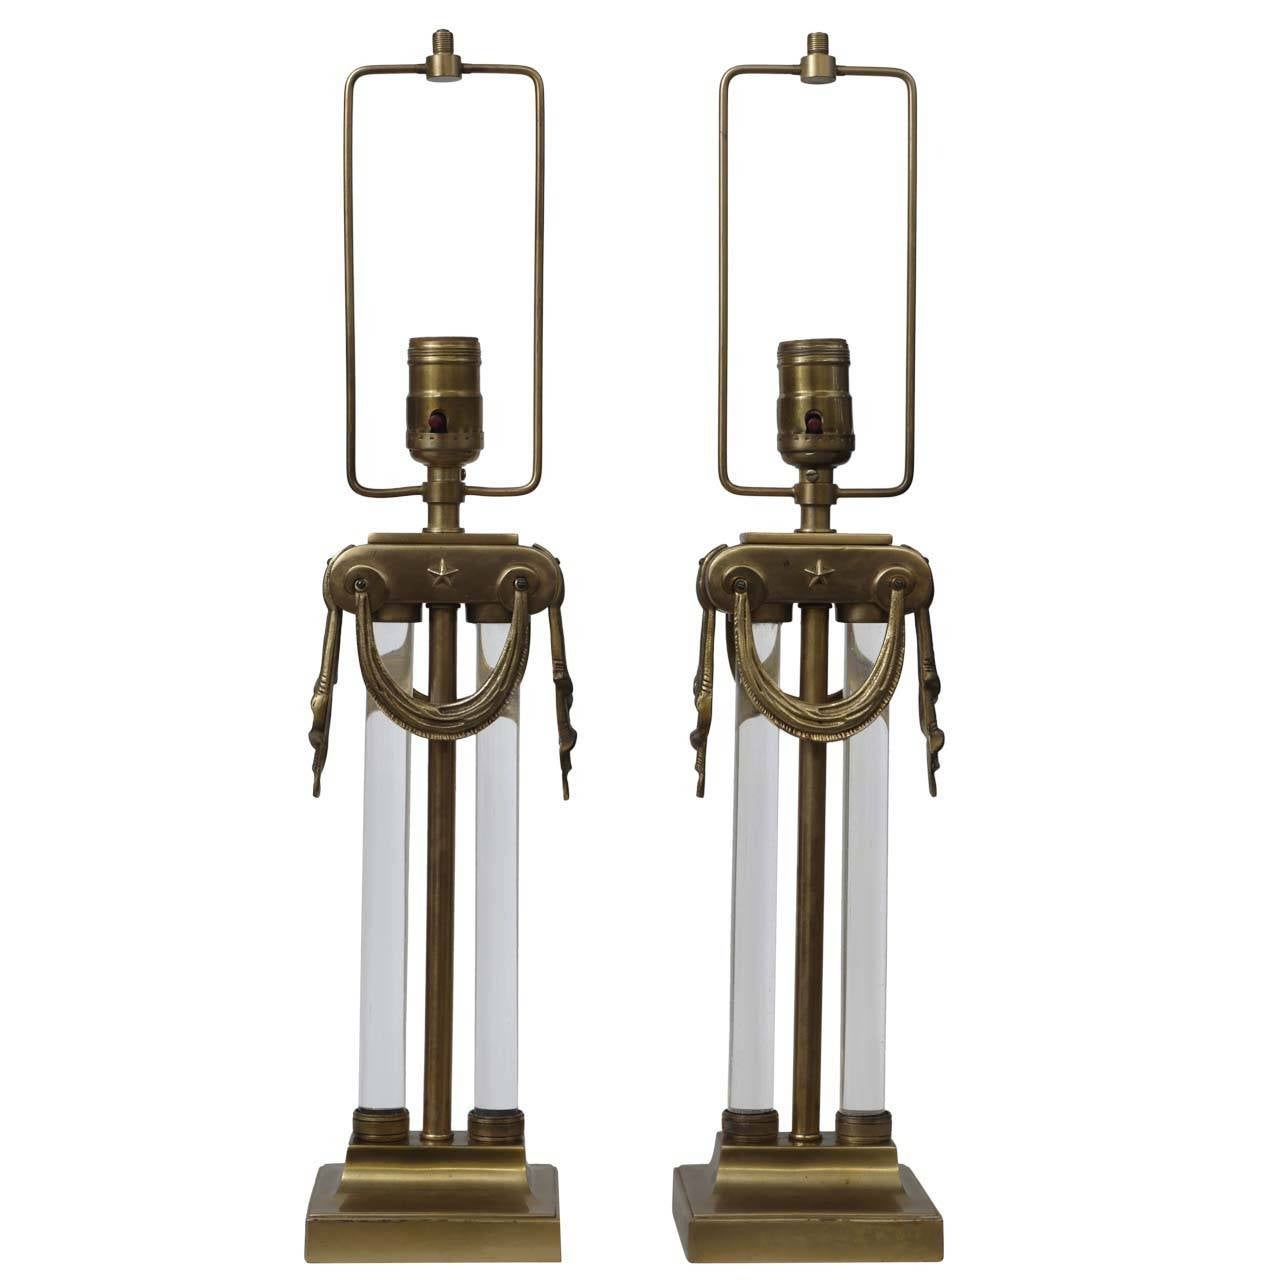 Rare Pair of Neoclassical Lamps by Mutual Sunset